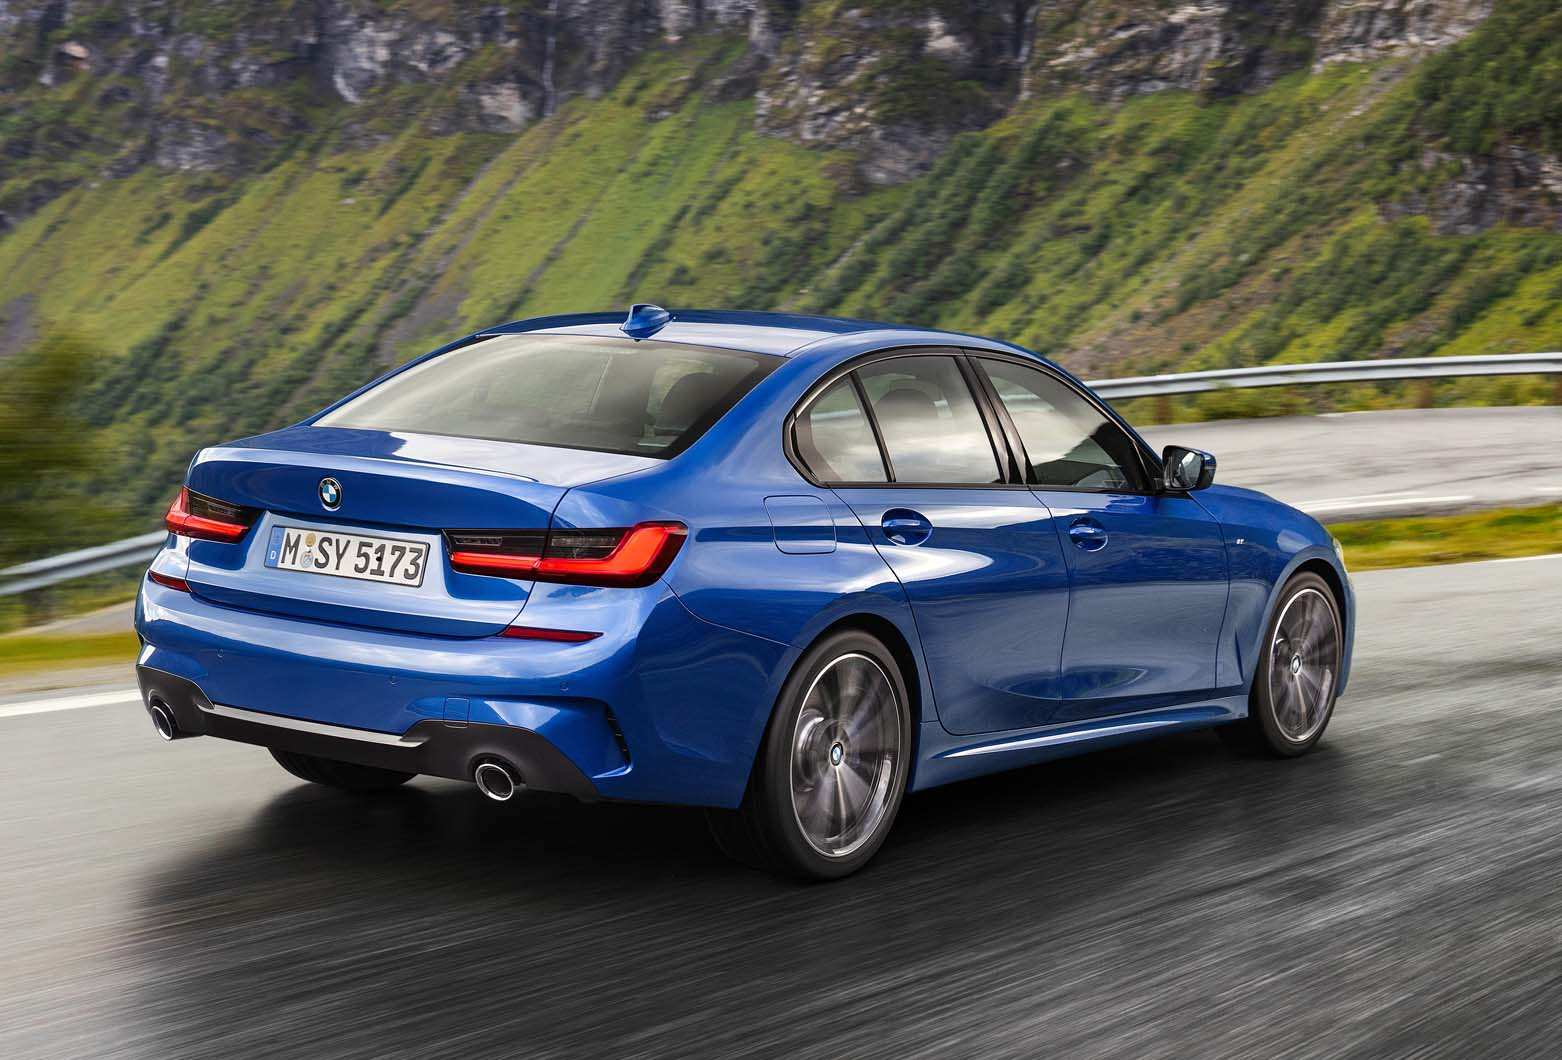 44 All New 2019 Bmw 3 Series G20 Interior